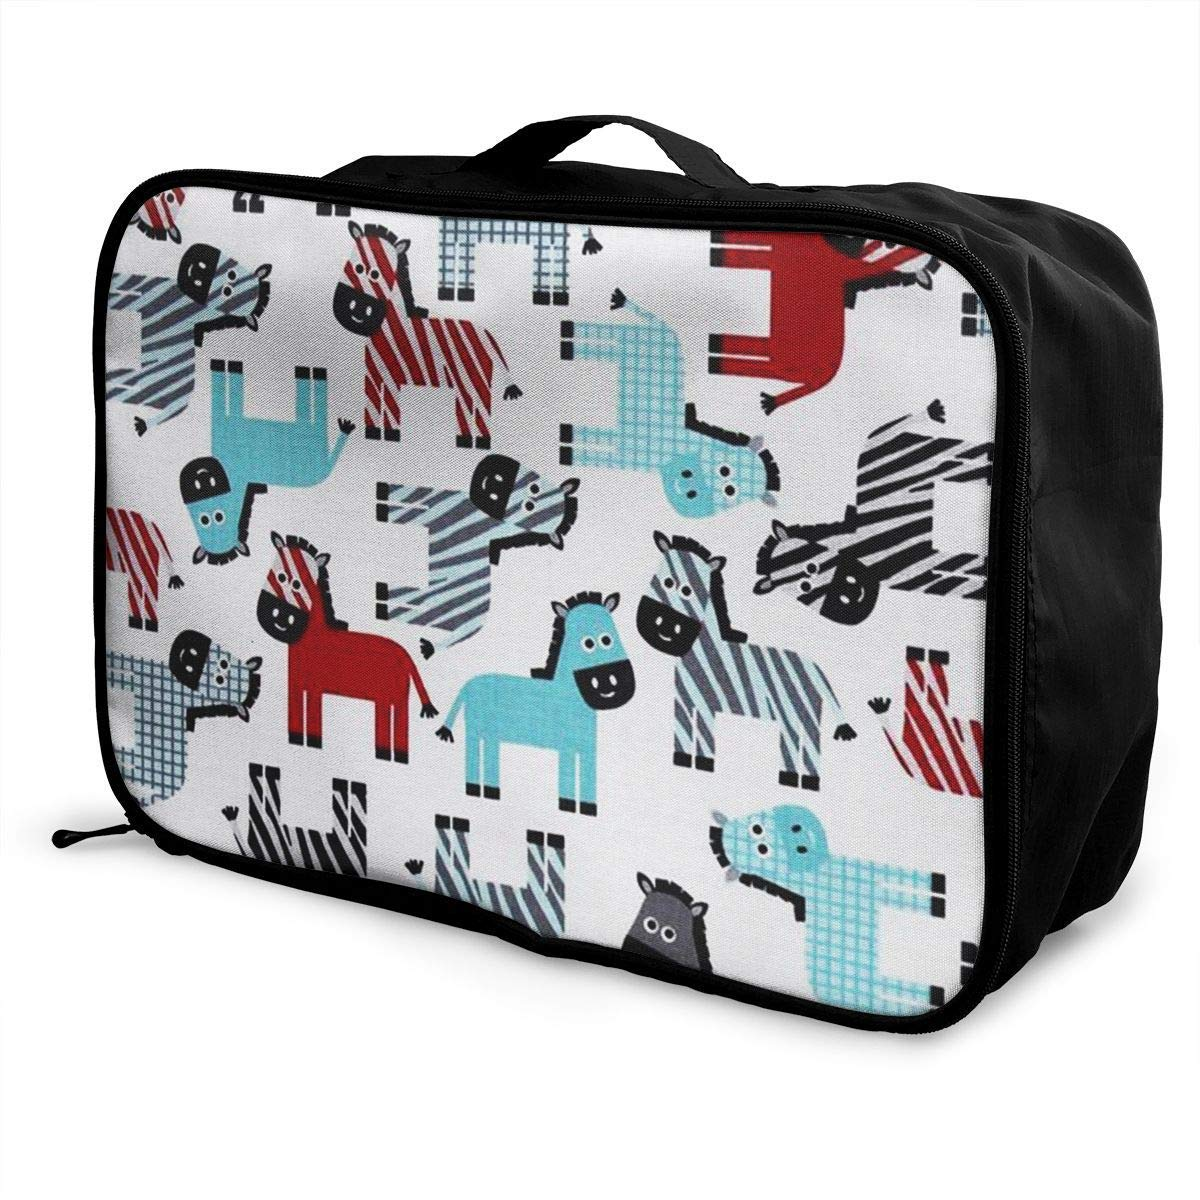 Portable Luggage Duffel Bag Stripe Horses Travel Bags Carry-on In Trolley Handle